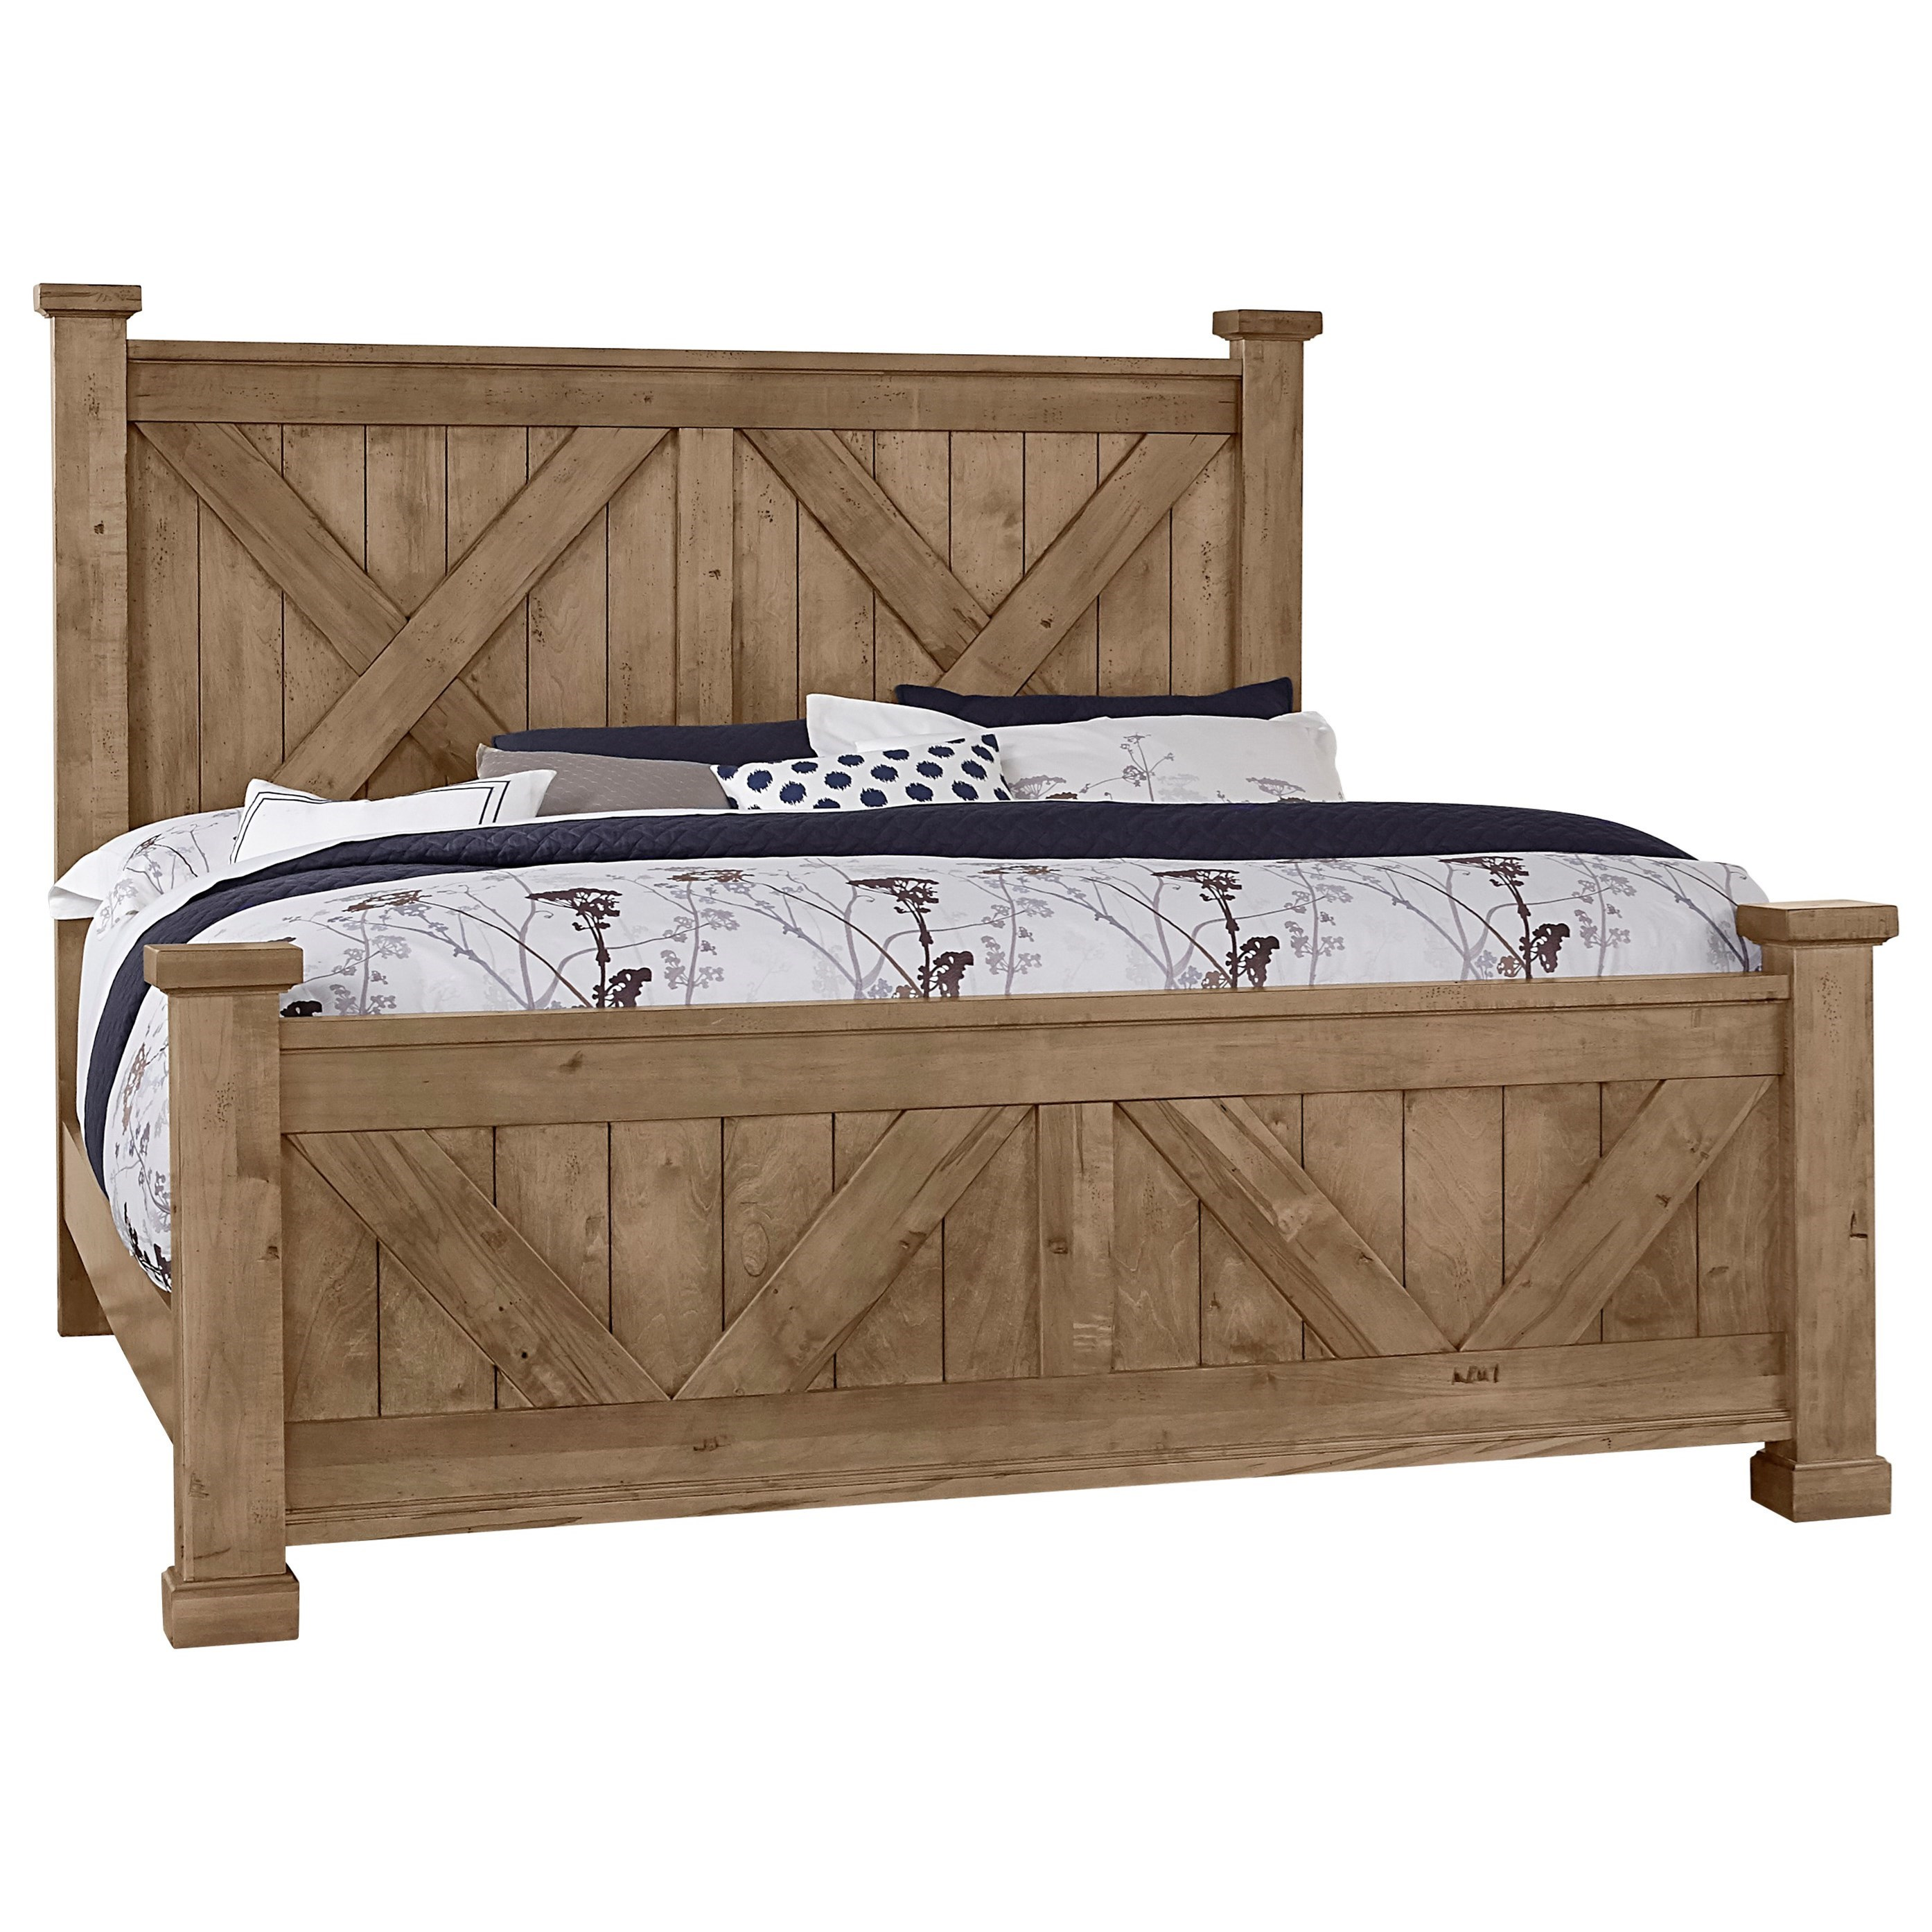 Cool Rustic King Barndoor X Bed by Artisan & Post at Northeast Factory Direct